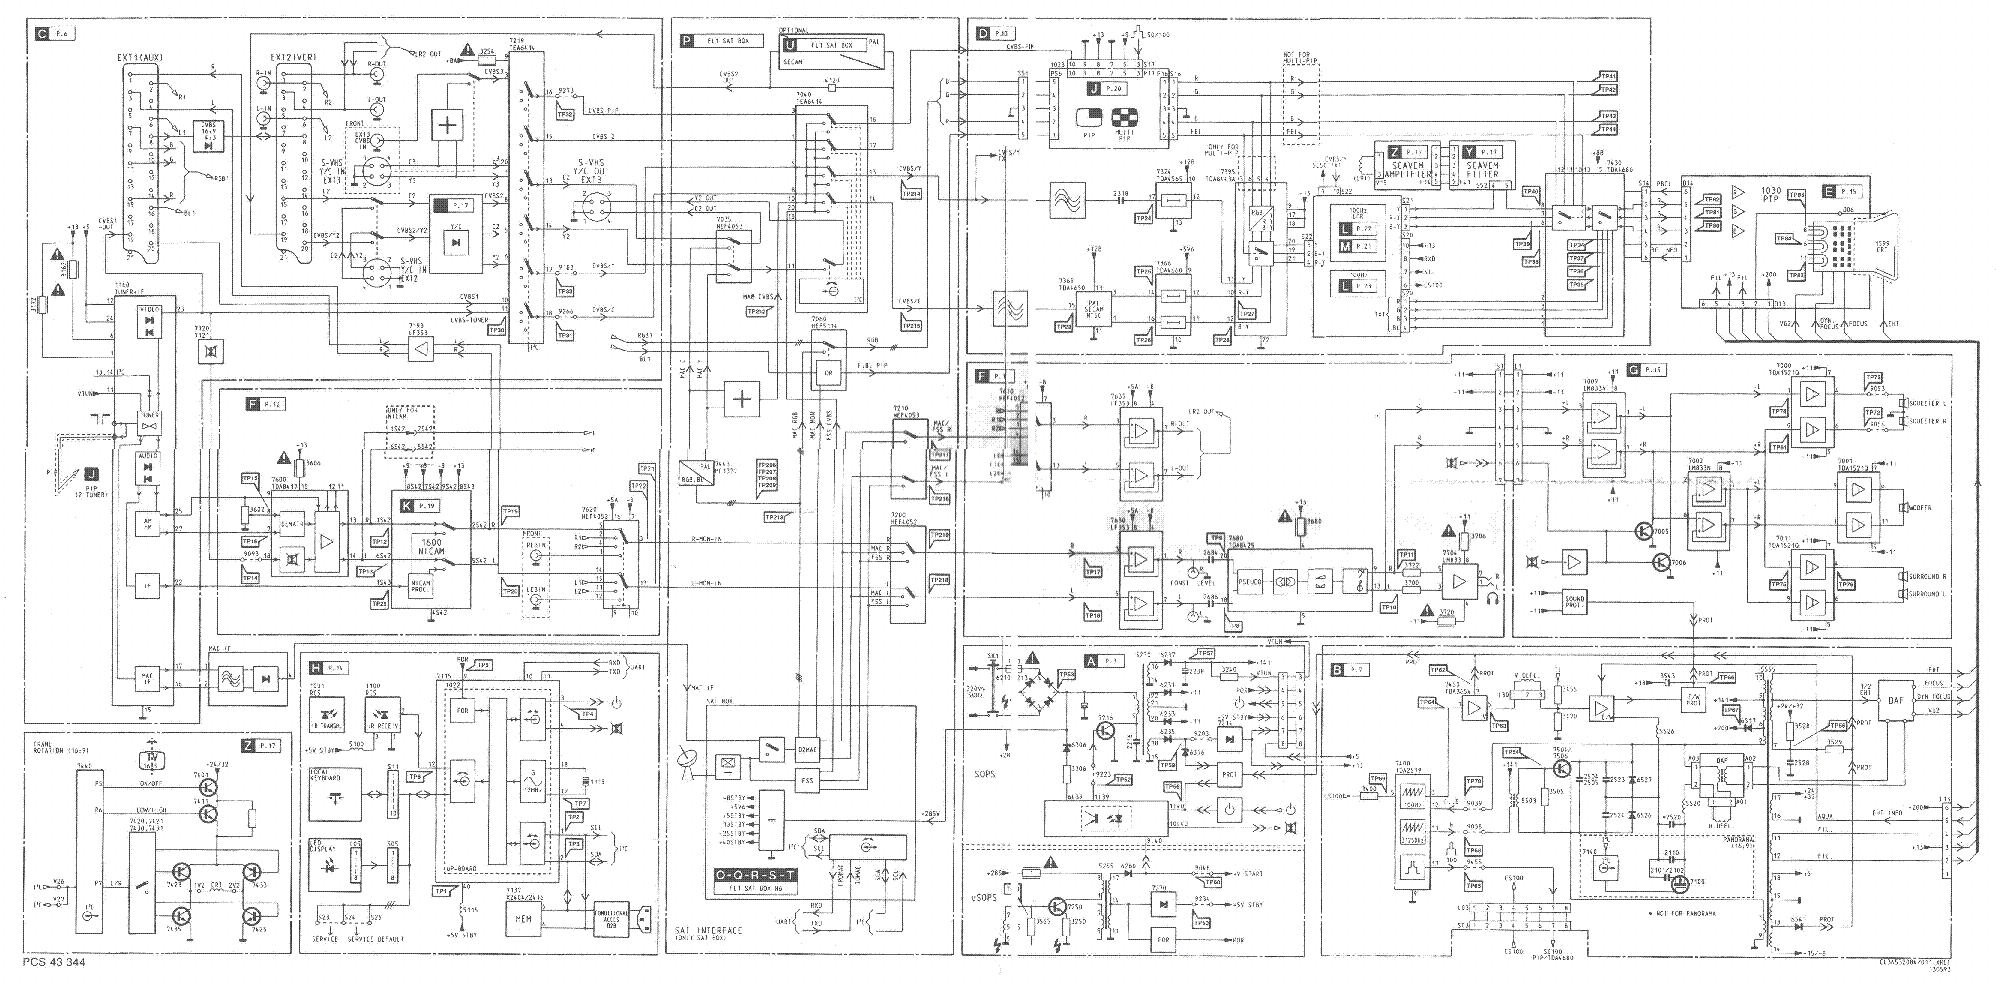 hight resolution of lcd wiring diagram free download schematic wiring library rh 17 skriptoase de philips 21 crt tv circuit diagram philips tv circuit diagram